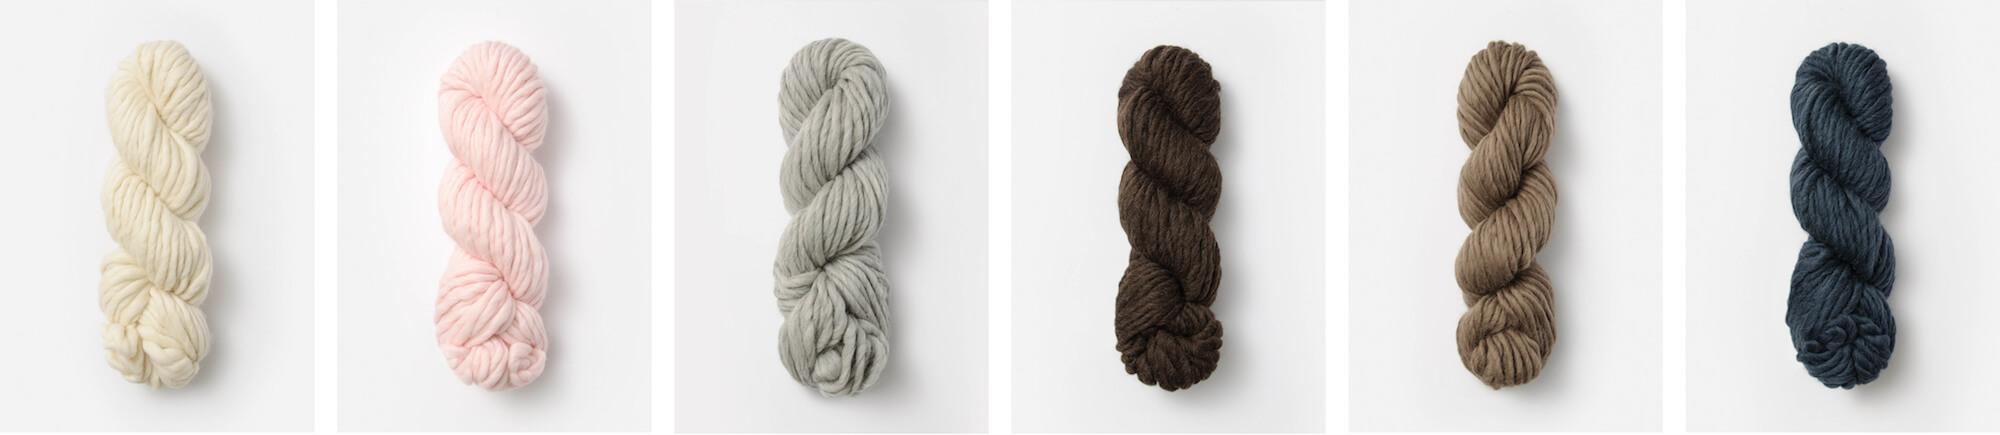 Bulky-Yarn-Winter-Color-Palette